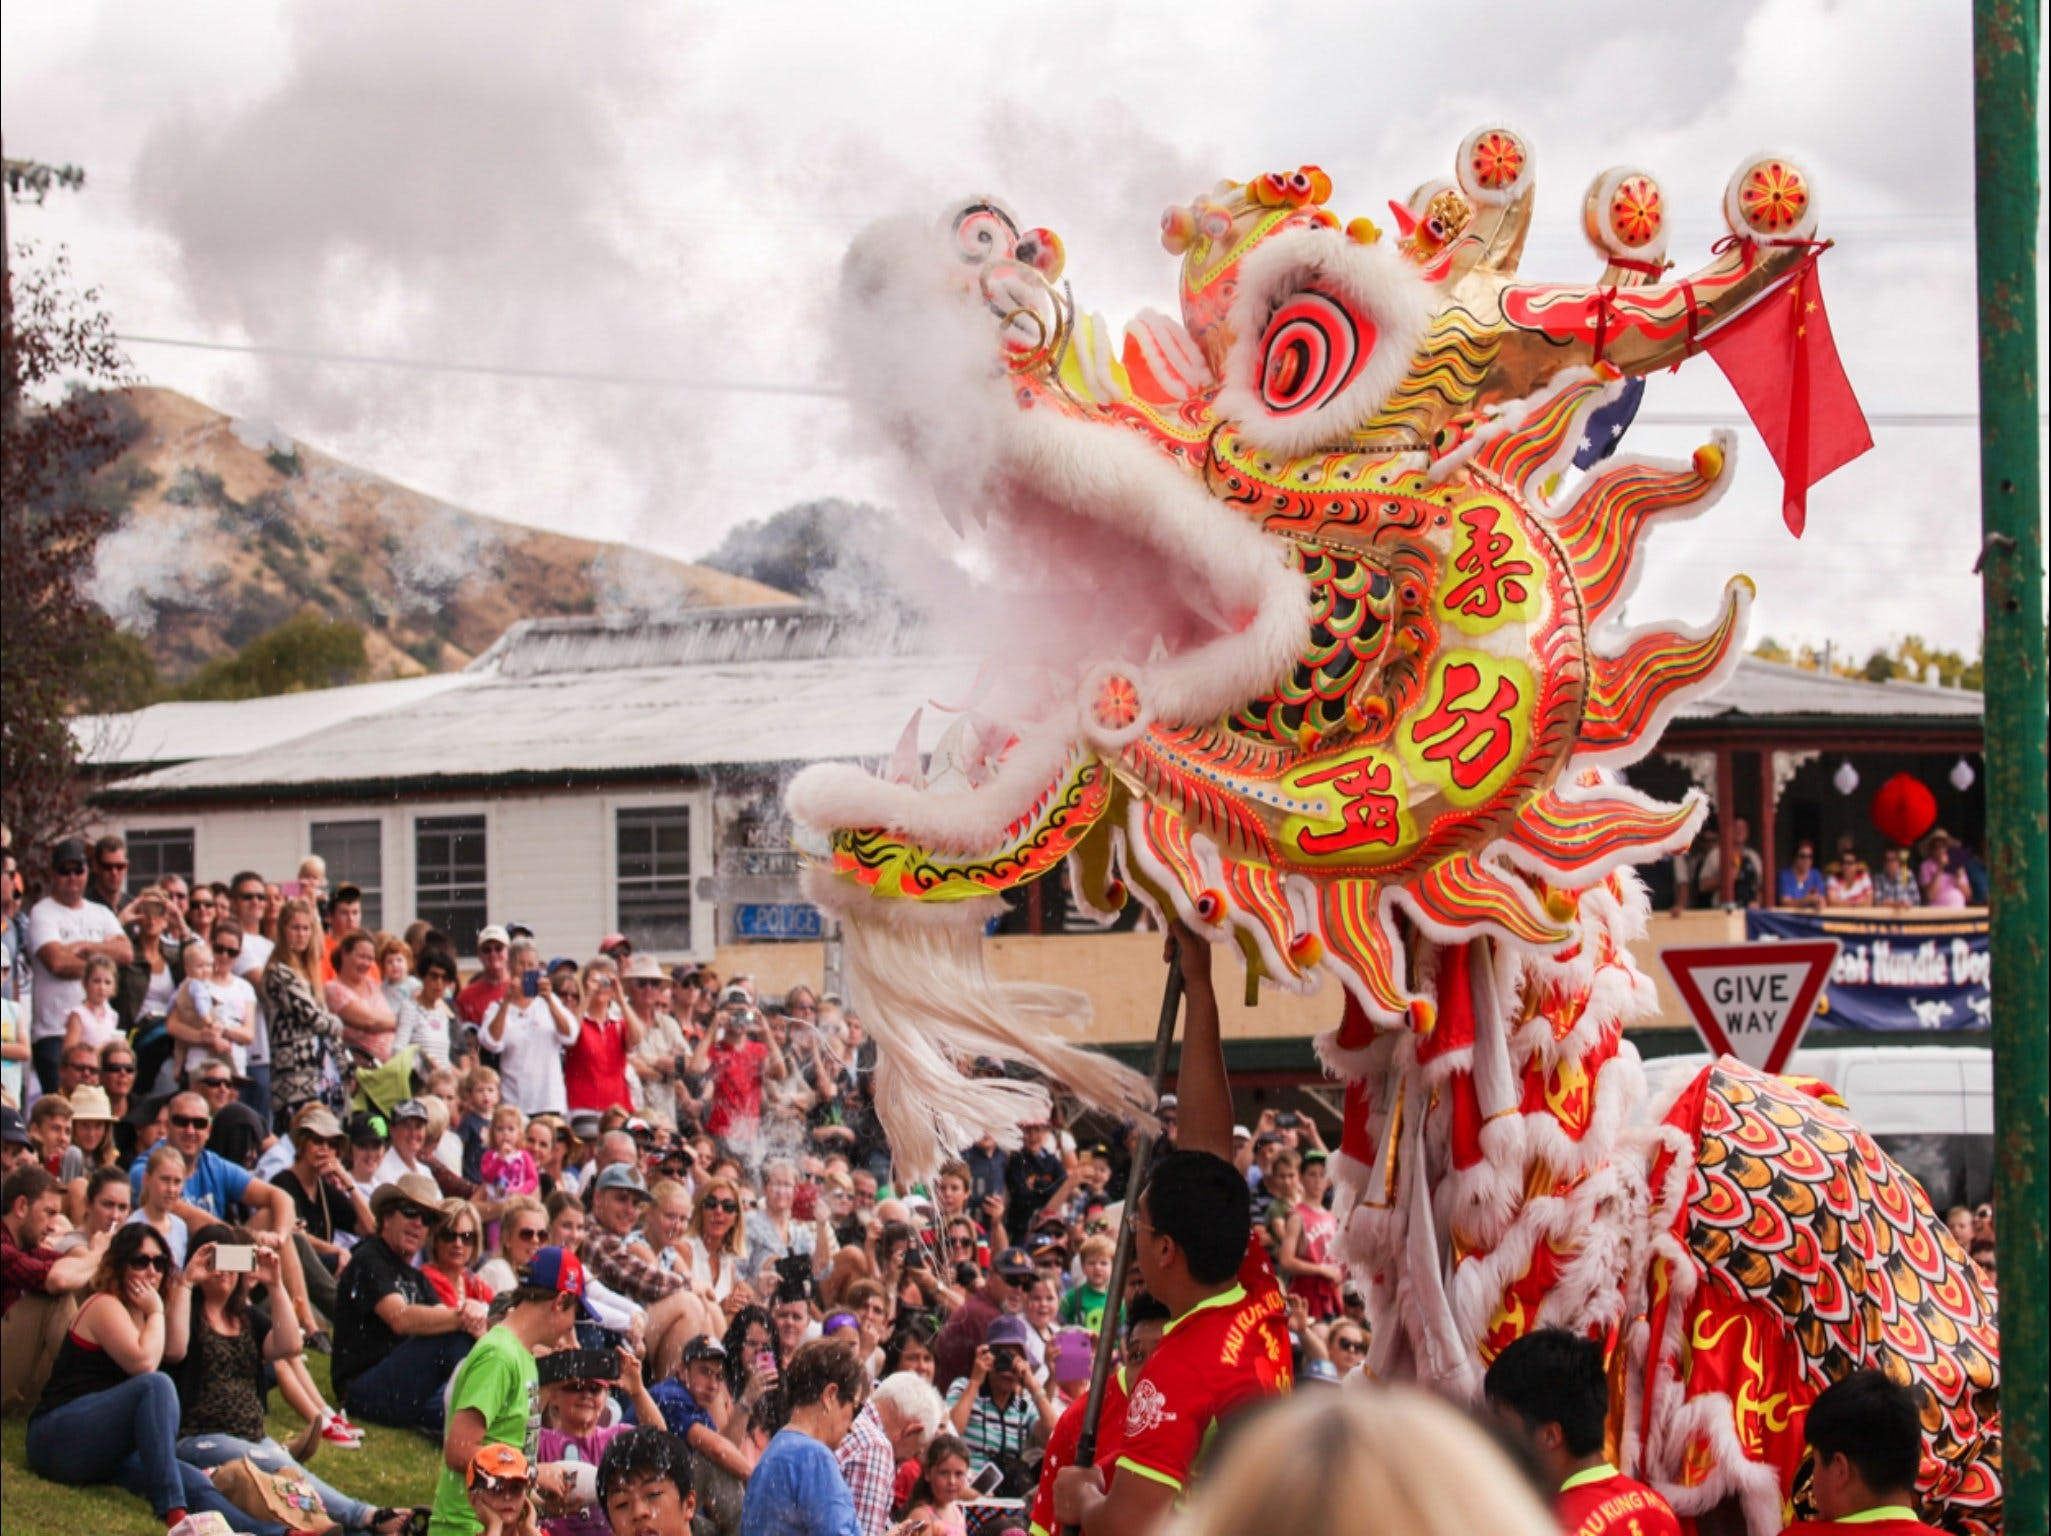 Nundle Go For Gold Chinese Easter Festival - Pubs and Clubs